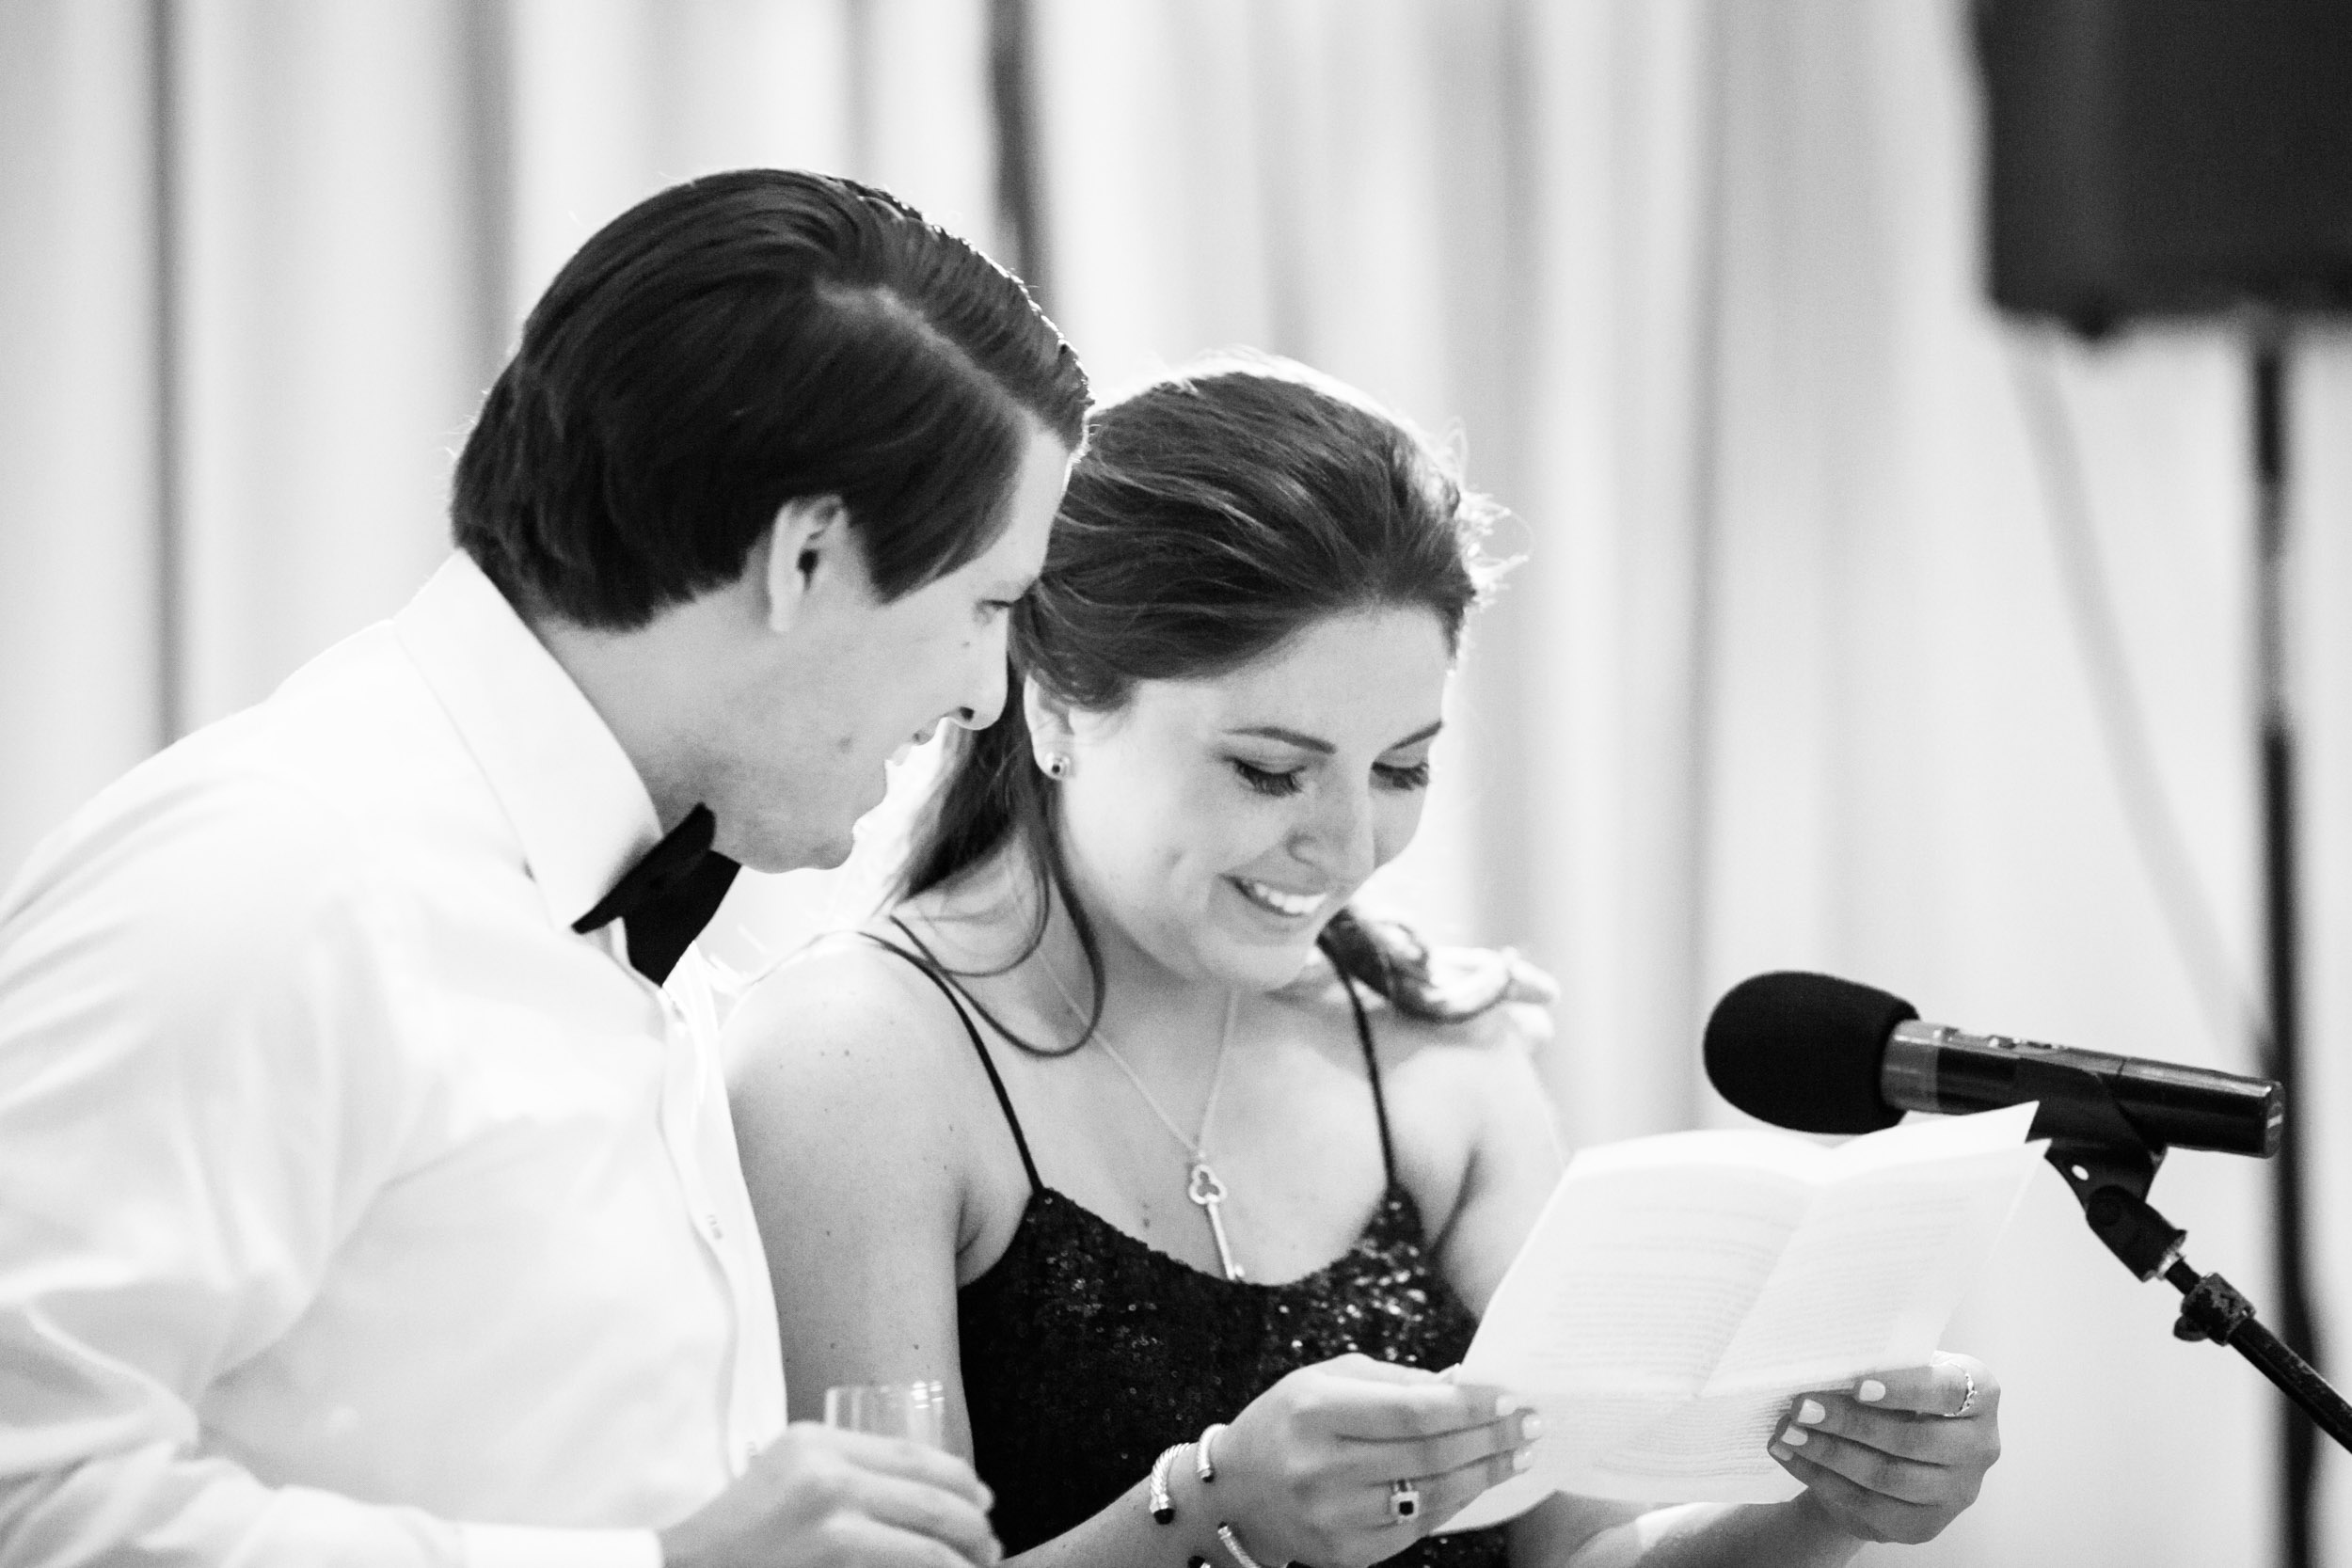 Emotional wedding photography in Chicago.